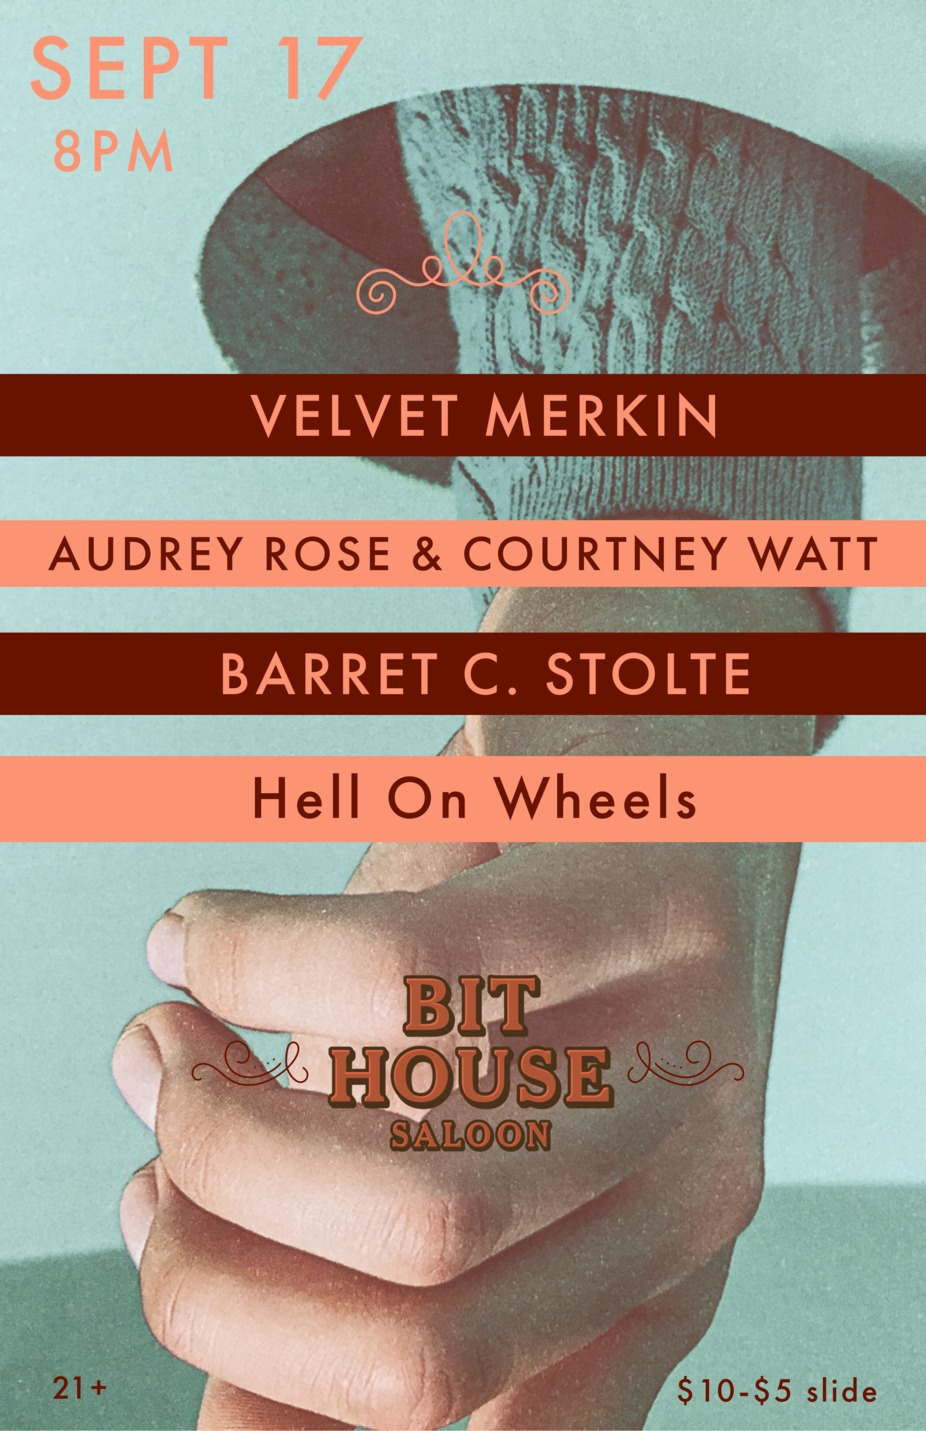 Velvet Merkin, Audrey & Courtney, Barret Stolte, Hell On Wheels event photo